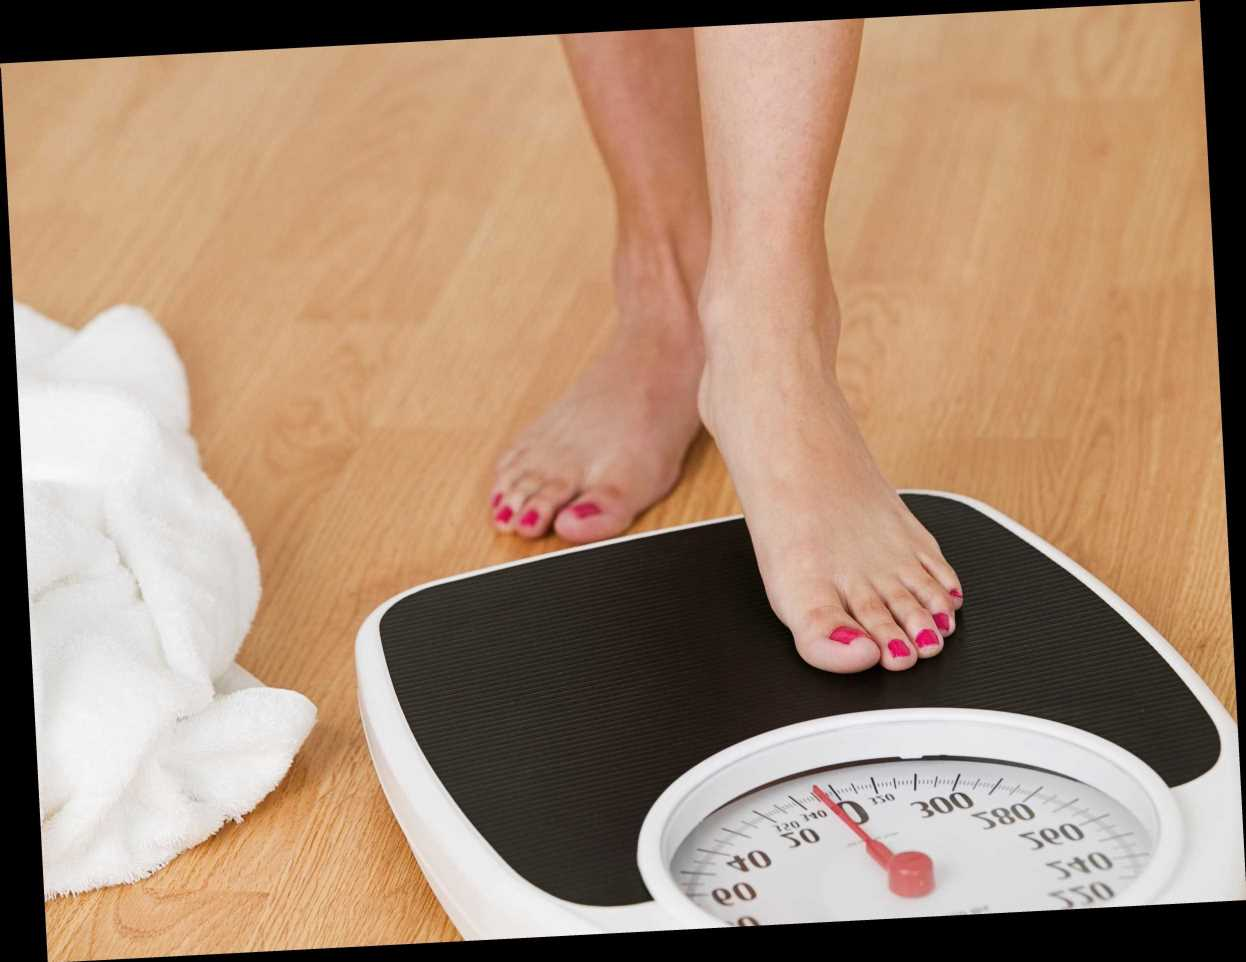 Women frustrated after 'losing weight in the wrong places' after health kick